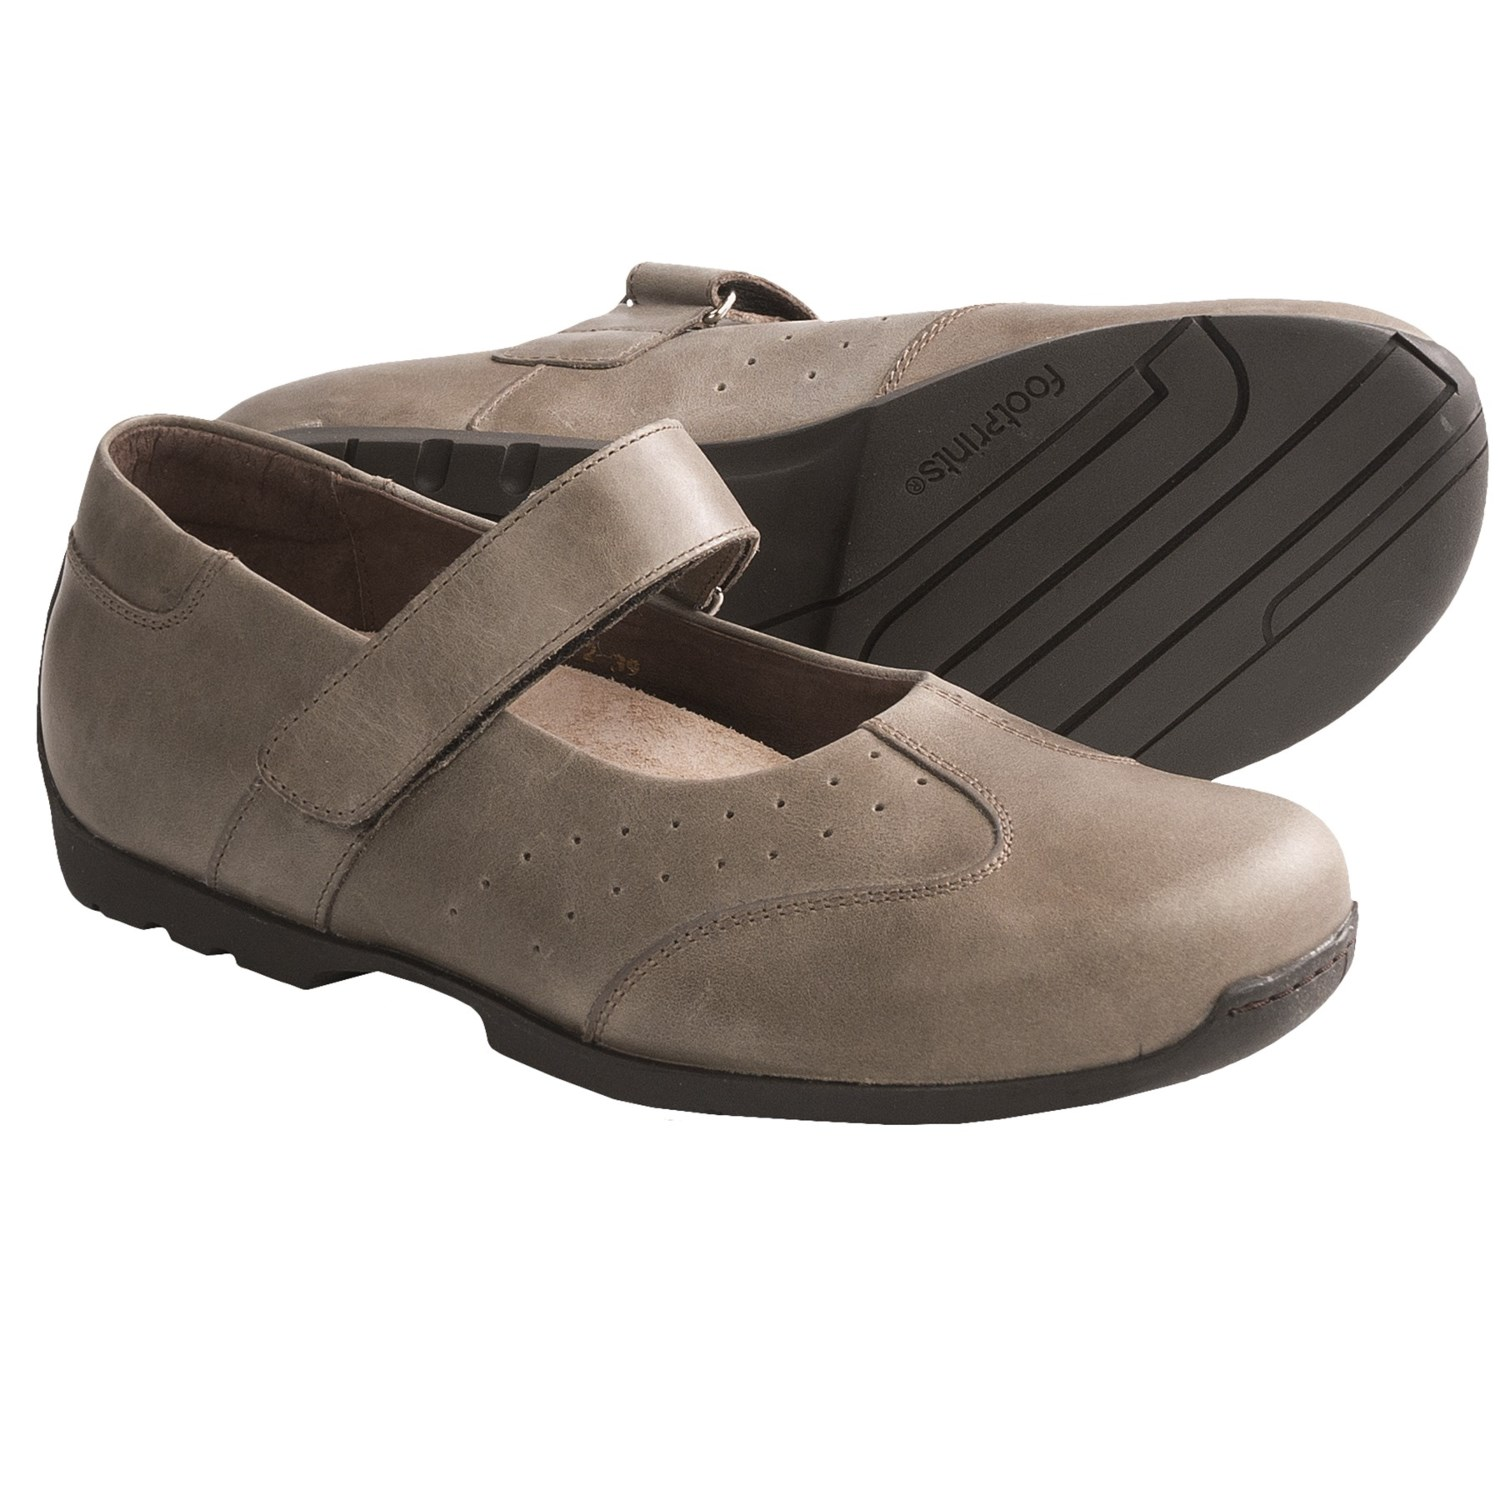 Footprints By Birkenstock Cambria Shoes For Women